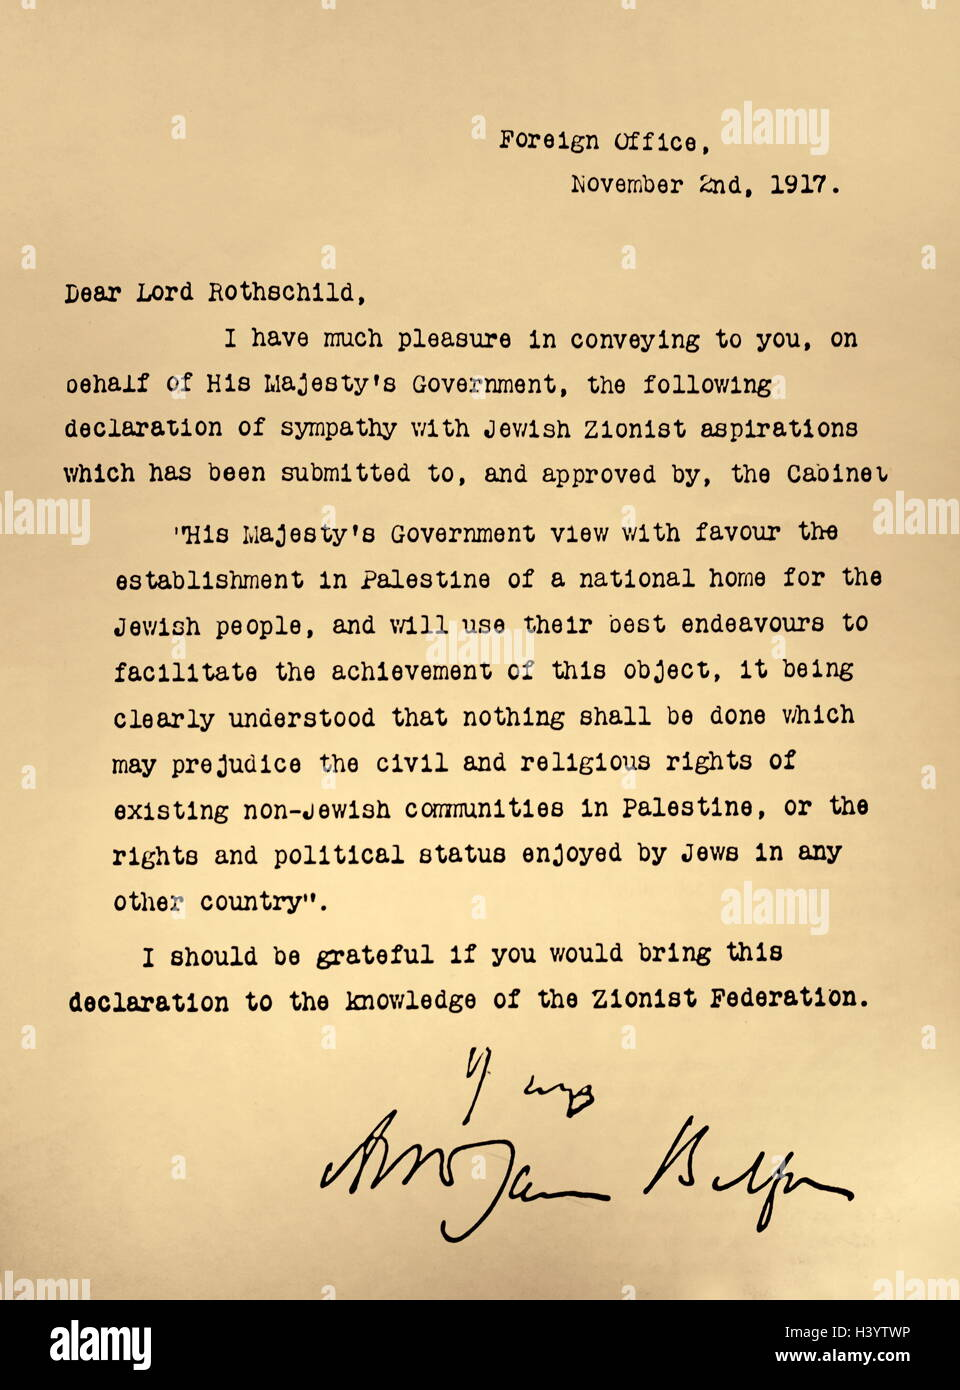 Letter from the Foreign Office to Lord Rothschild known as the 'The Balfour Declaration'. Dated 20th Century - Stock Image